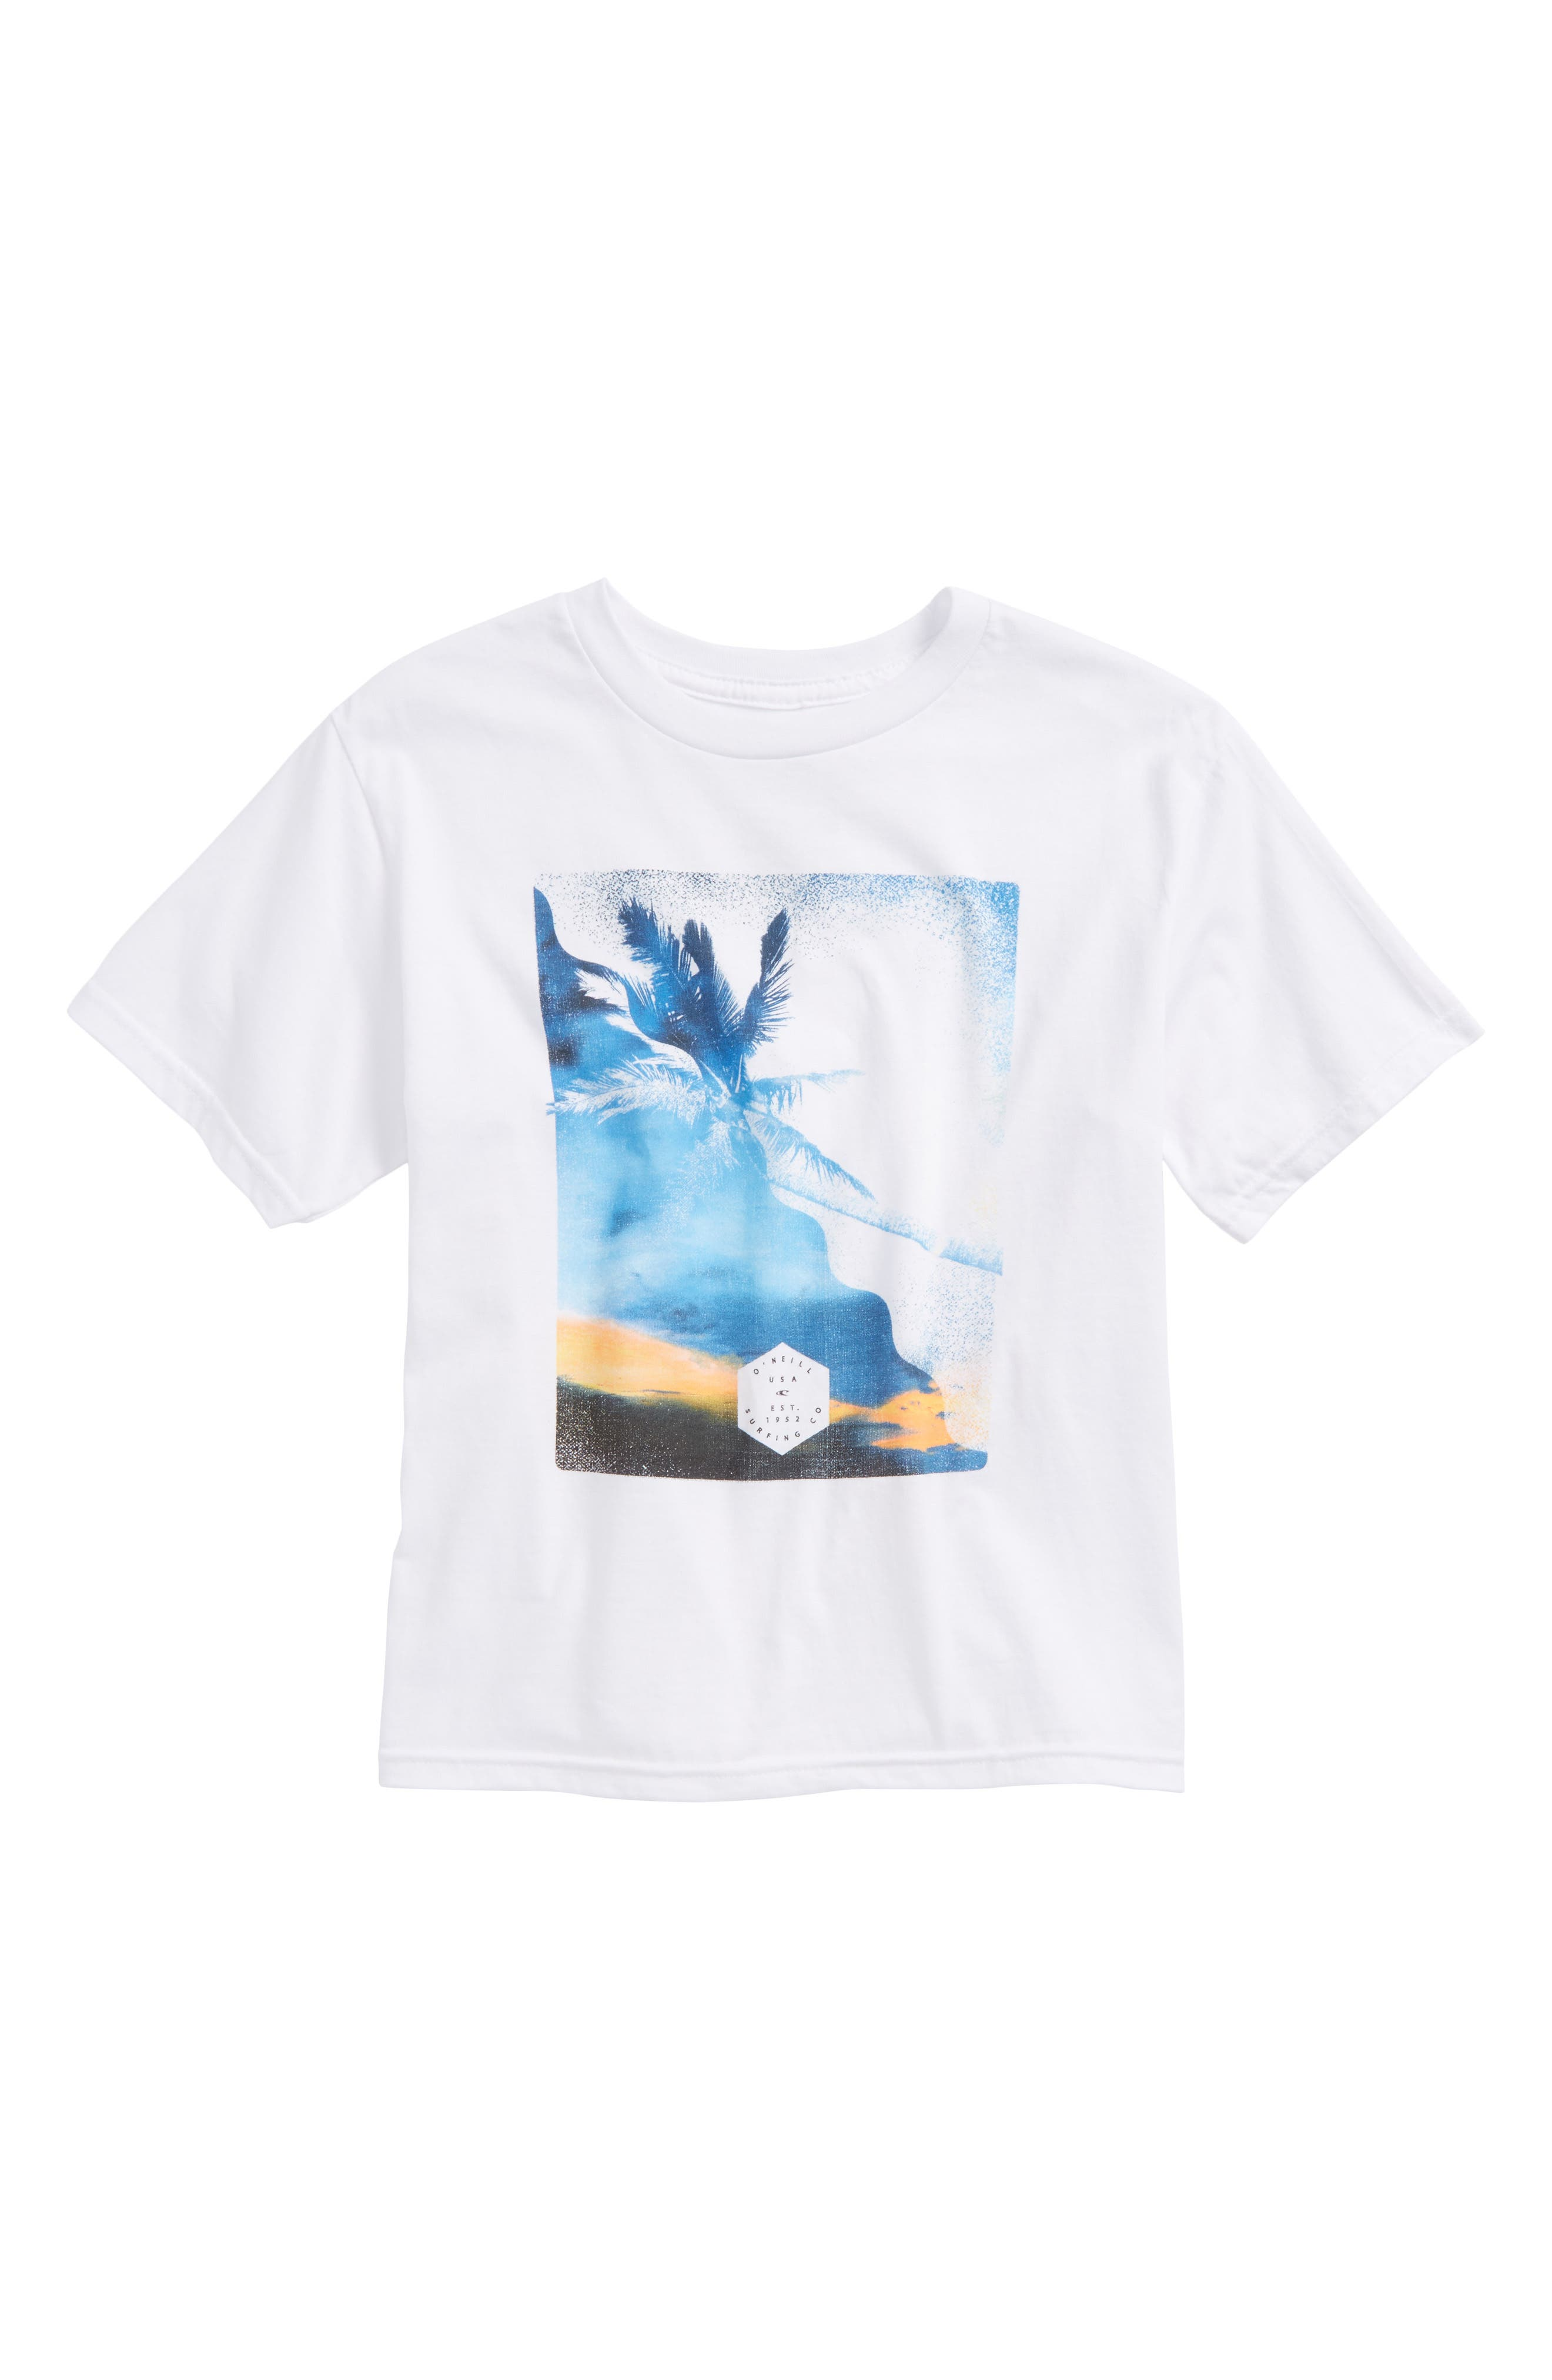 Canopy Graphic T-Shirt,                             Main thumbnail 1, color,                             100